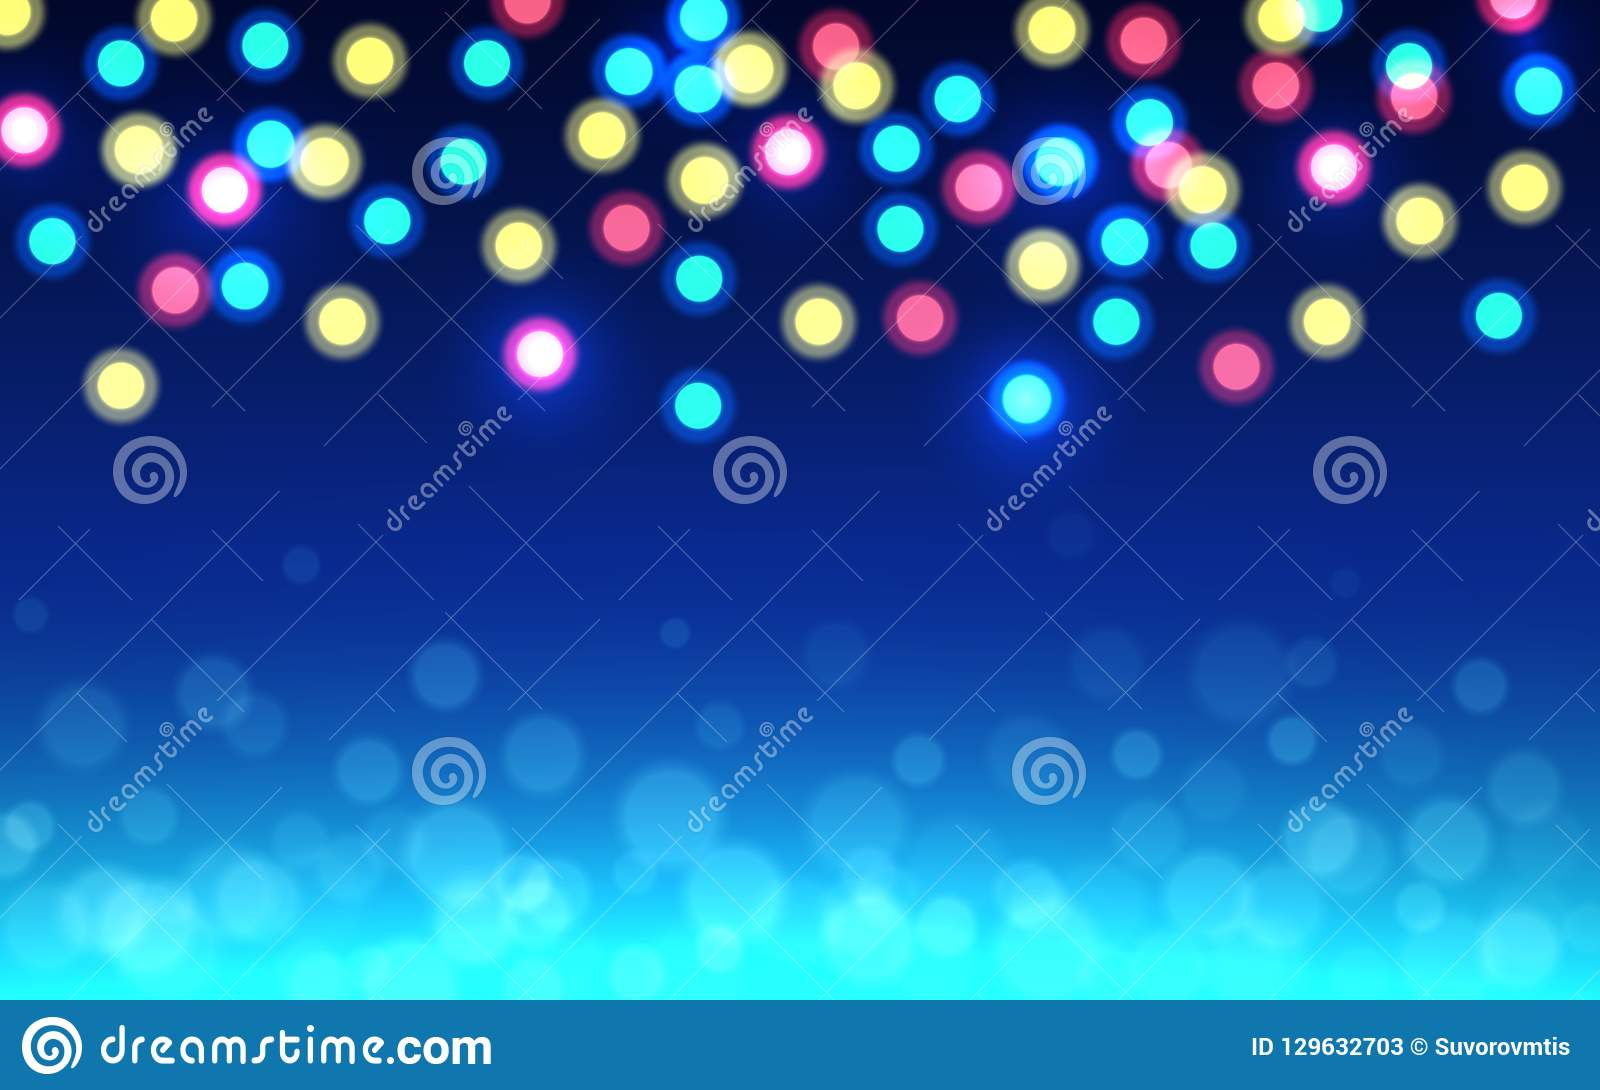 Christmas bokeh background. Color defocused lights on blue backdrop. Abstract shining circles. Unfocused soft glow